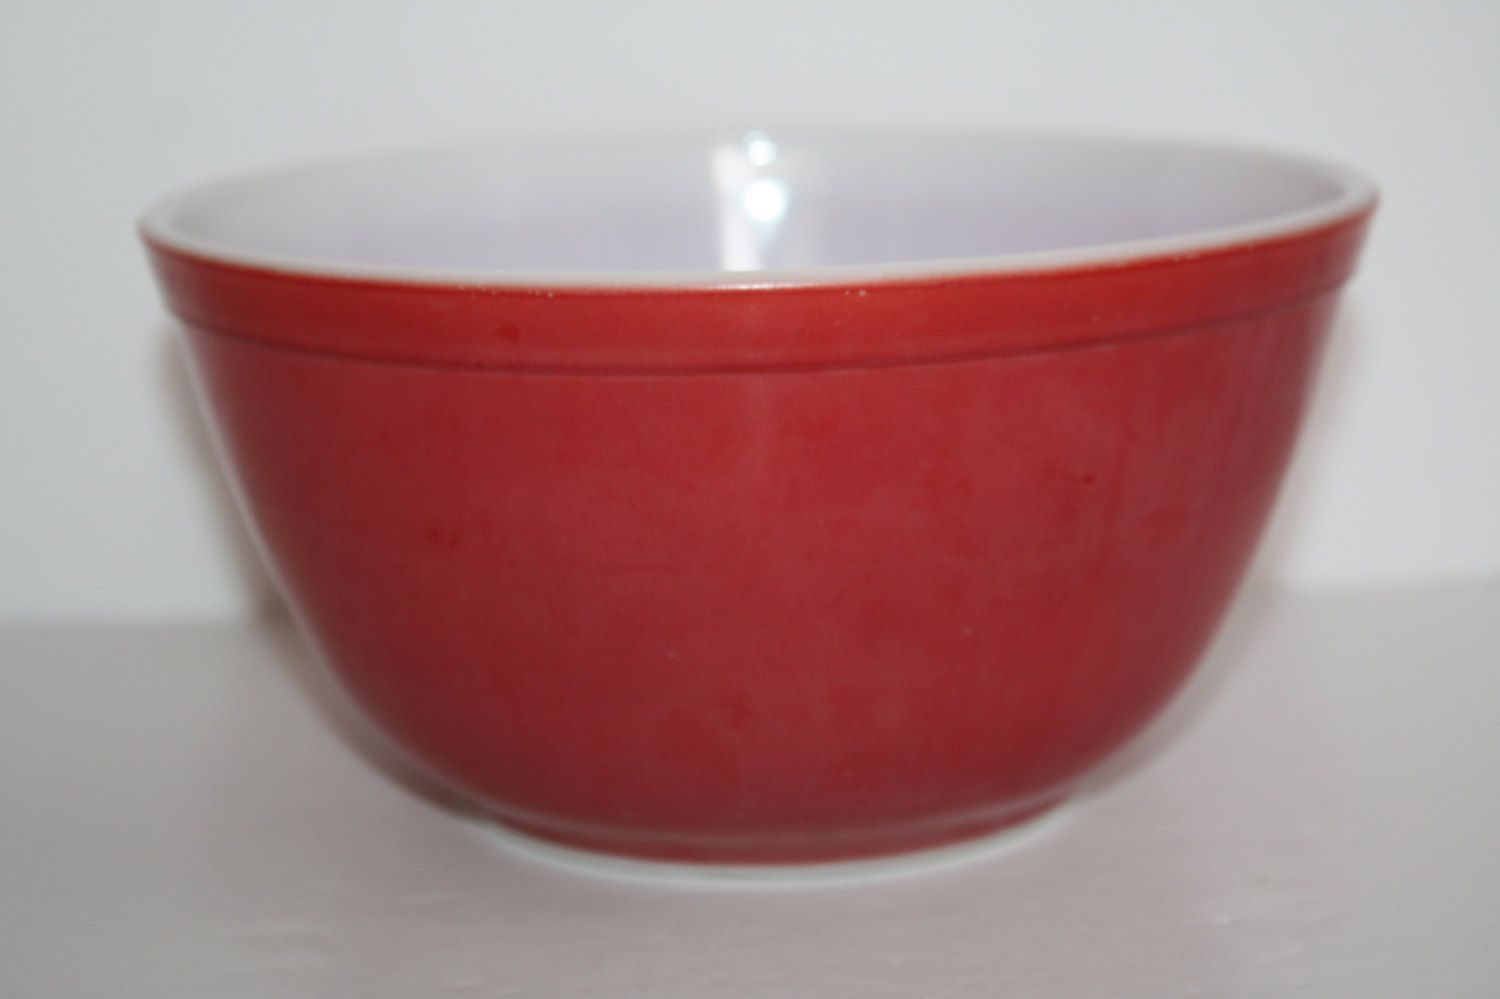 Vintage Red Pyrex Mixing Bowl 402 1 1/2 Qt/Pyrex Mixing Bowl/Primary ...